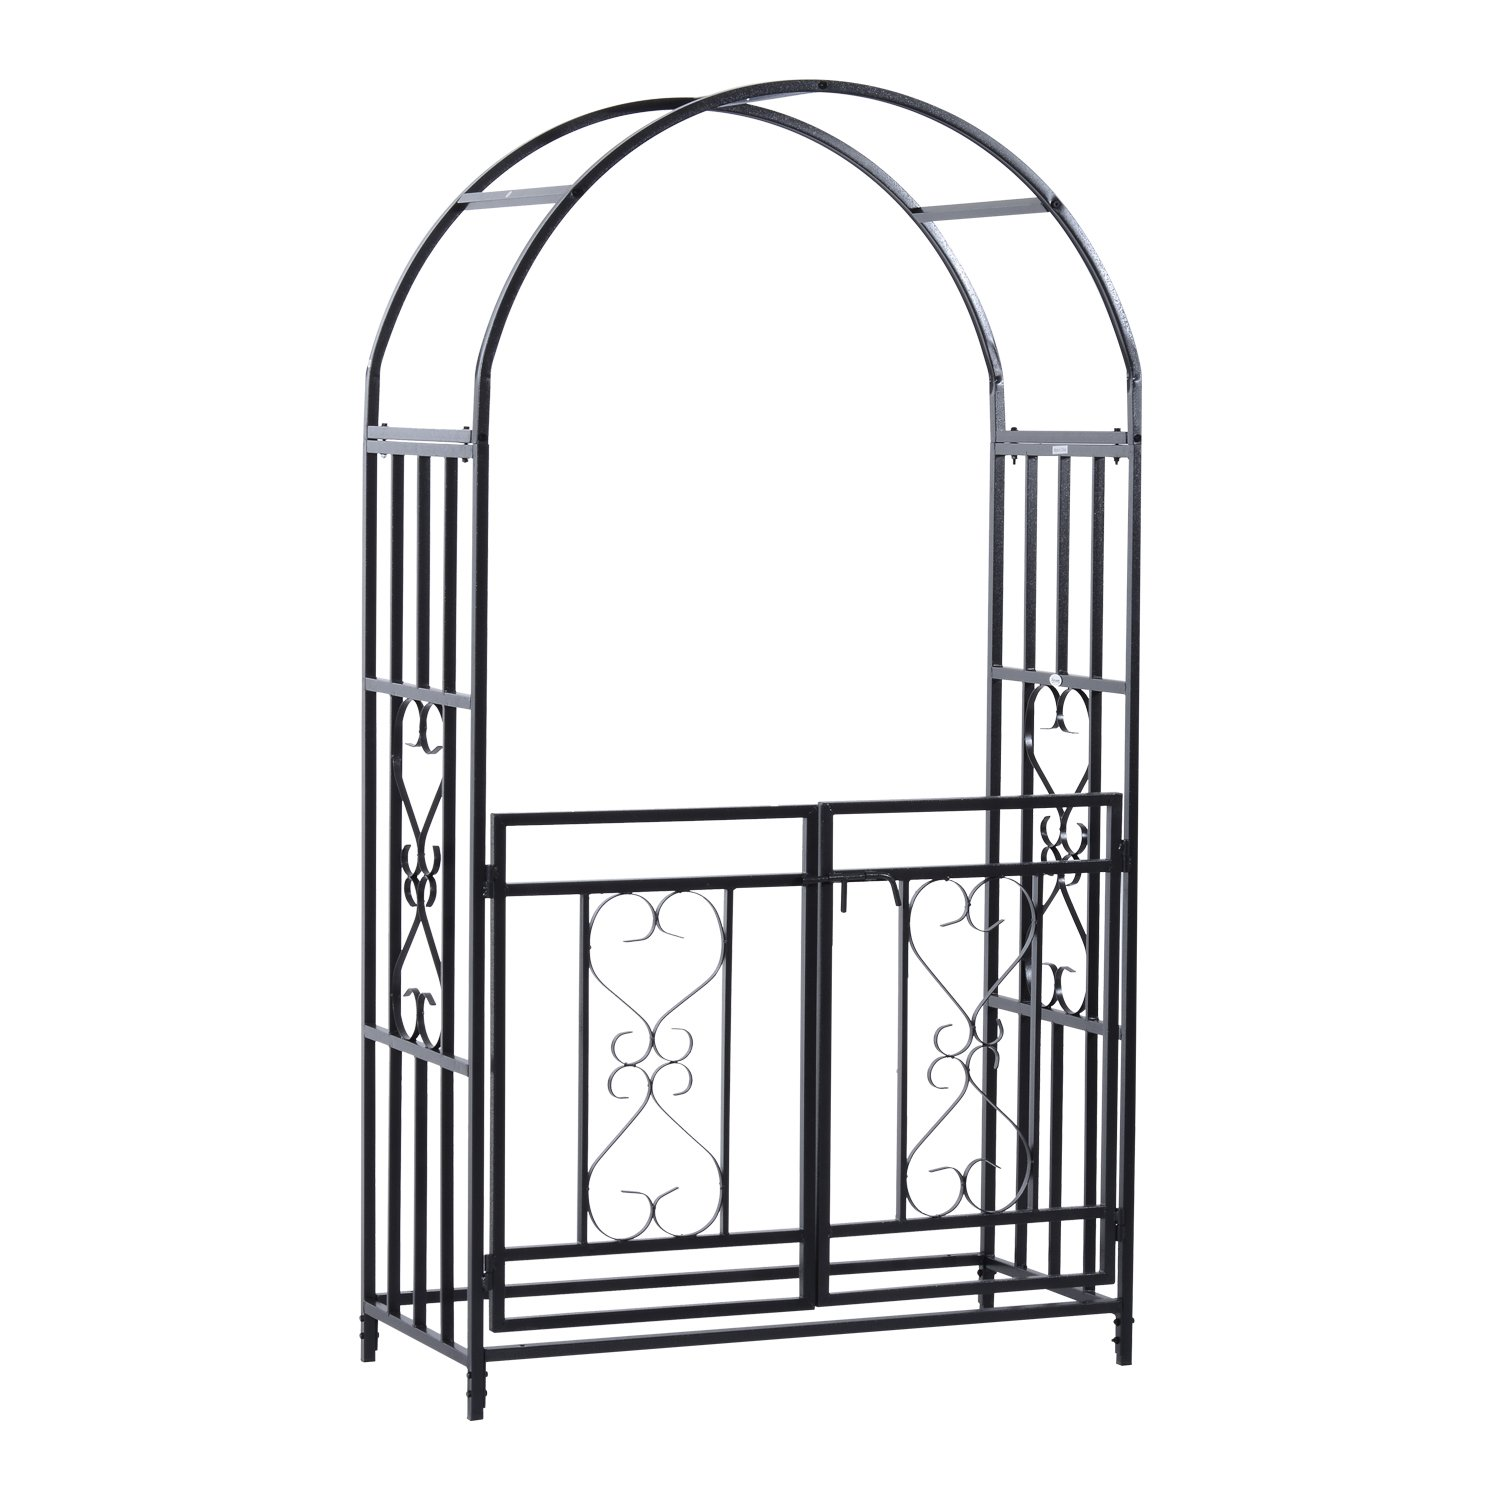 Outsunny Decorative Metal Backyard Garden Arch (Gated)